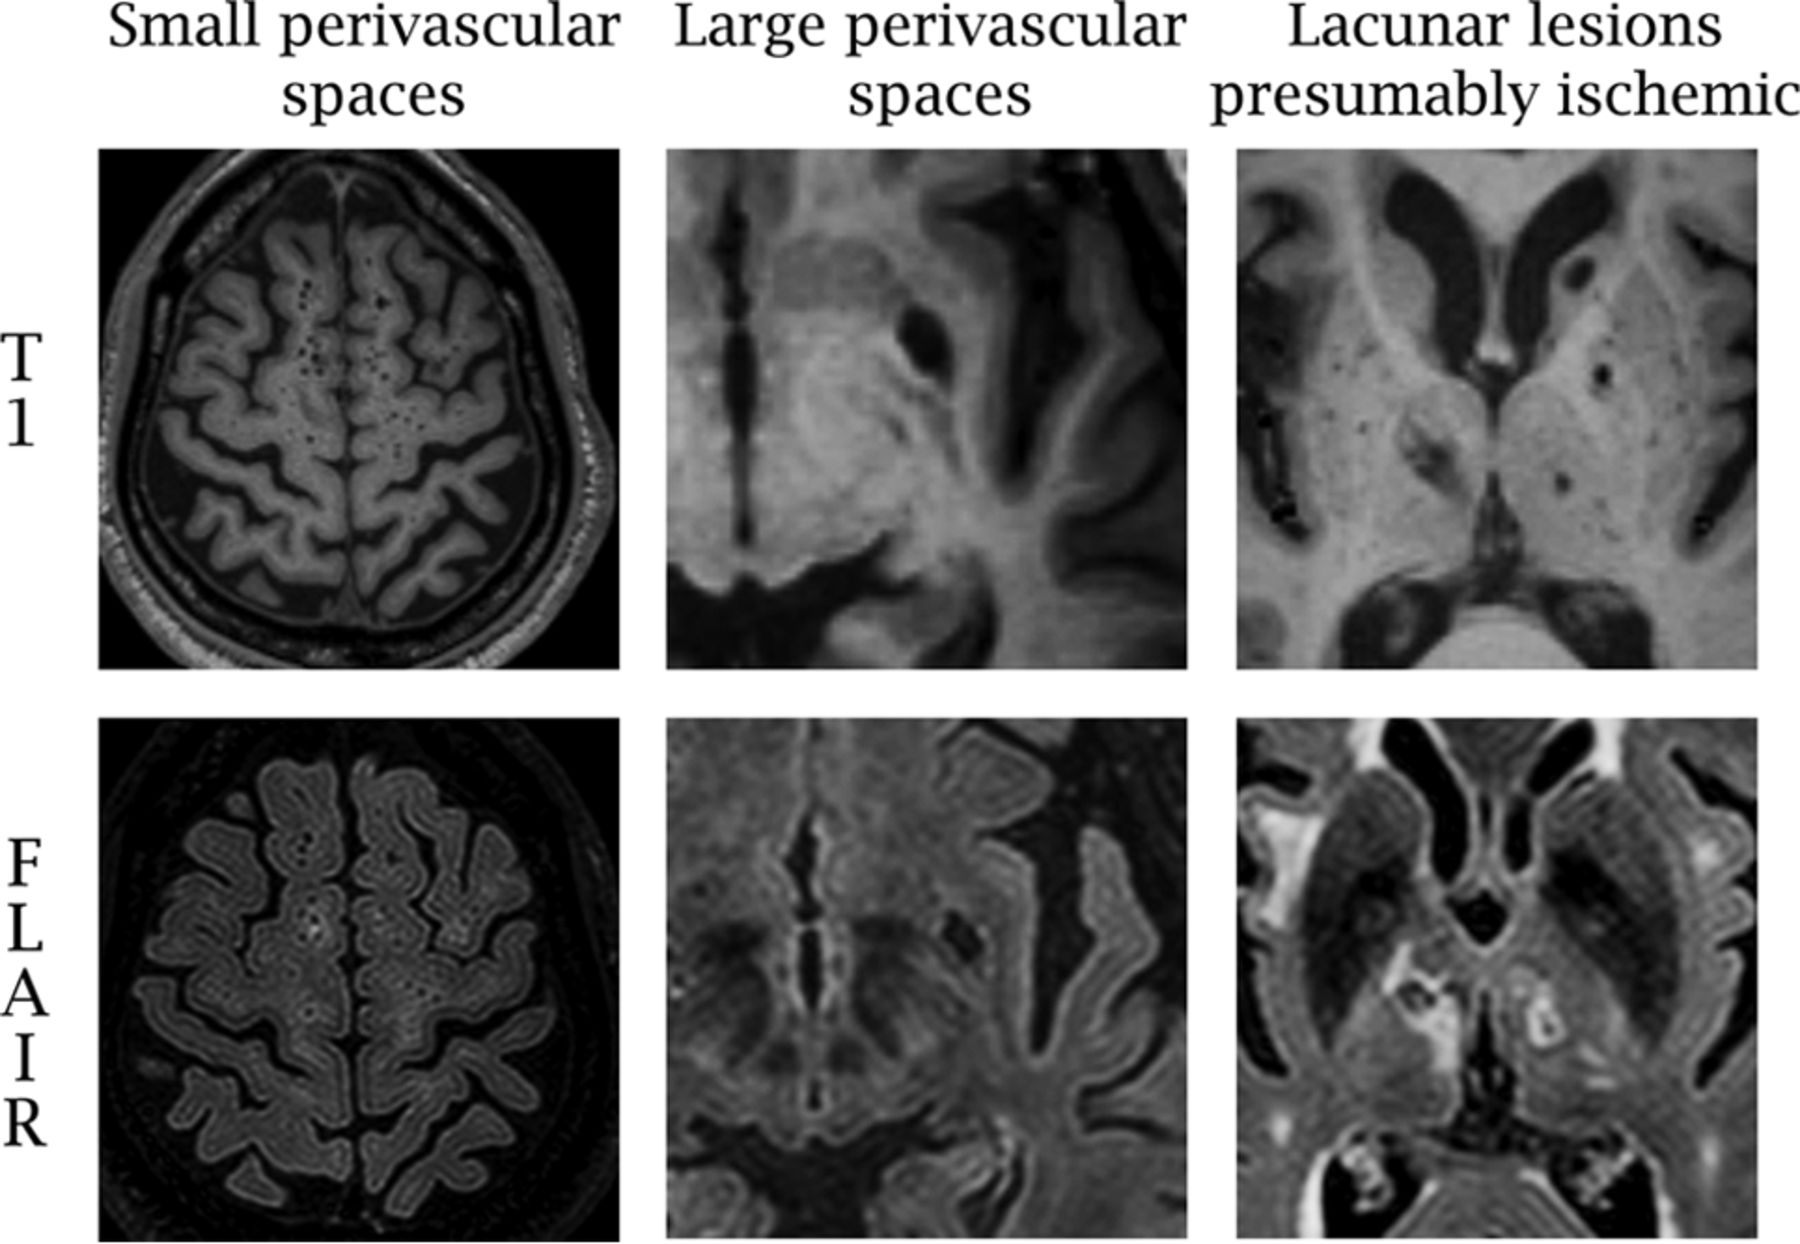 Brain Perivascular Spaces as Biomarkers of Vascular Risk